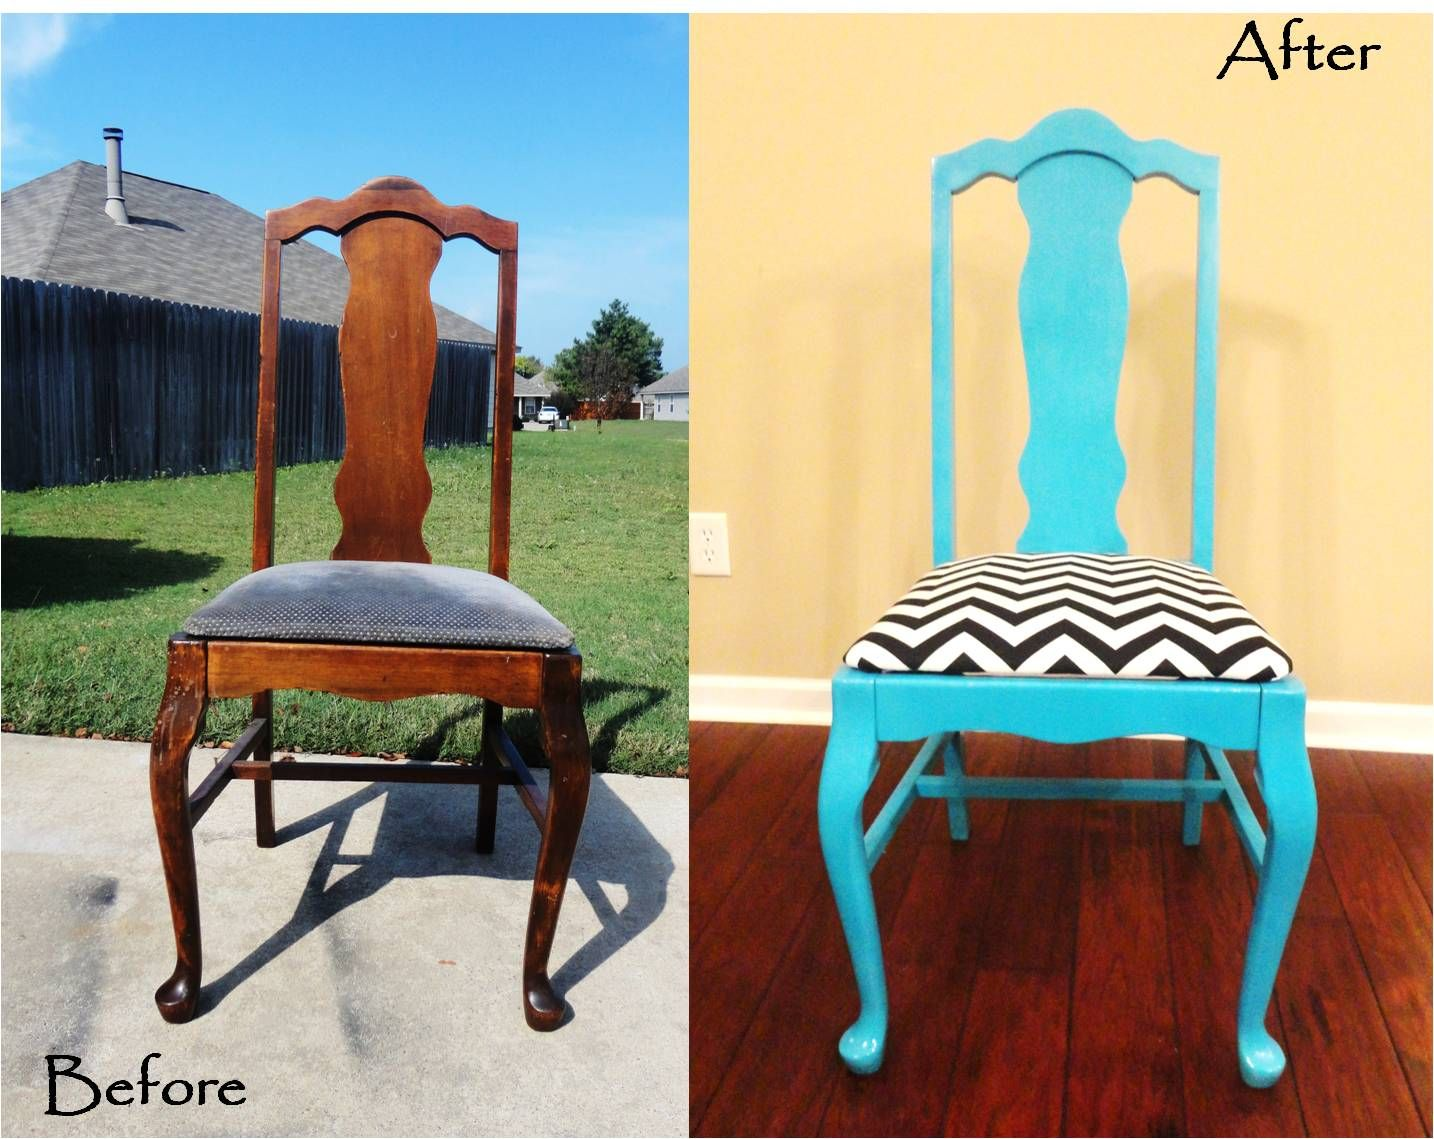 Refurbished Chairs Refinished Chair Diy Entertainment Ideas Pinterest